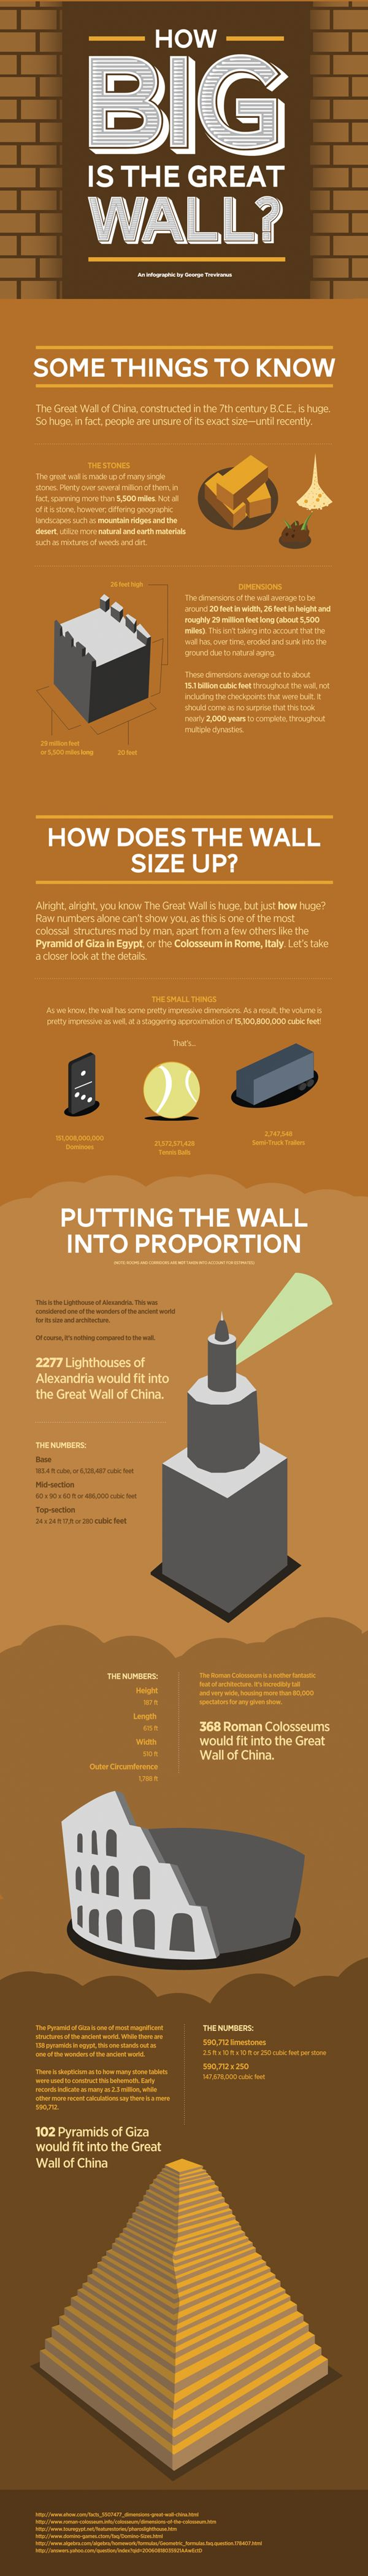 best images about cultura chinese culture on datos sobre la gran muralla infografia infographic